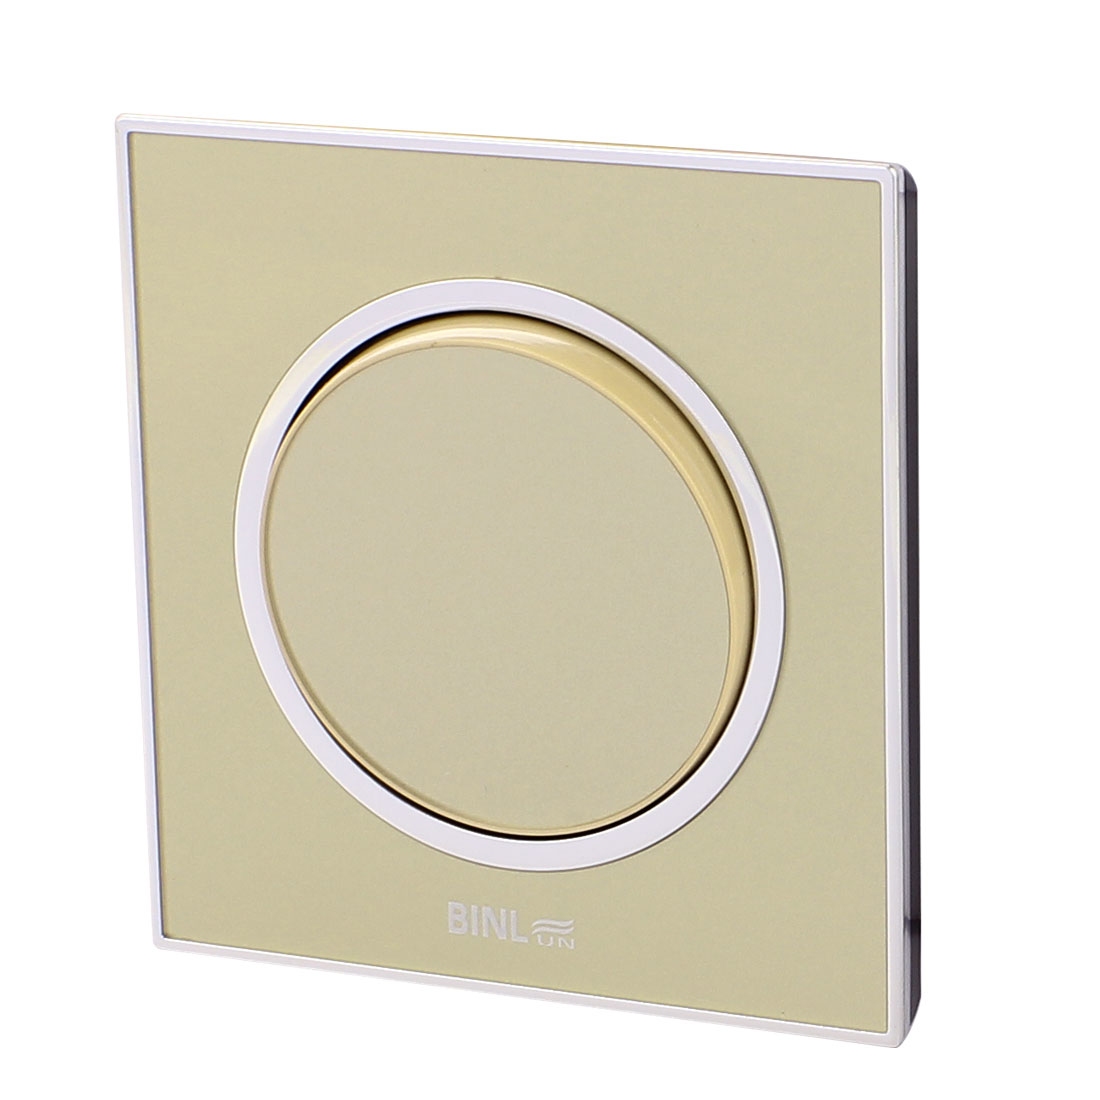 AC 220V 10A Champagne Single Rounded Press Button Wall Mounted Switch 86 x 86mm